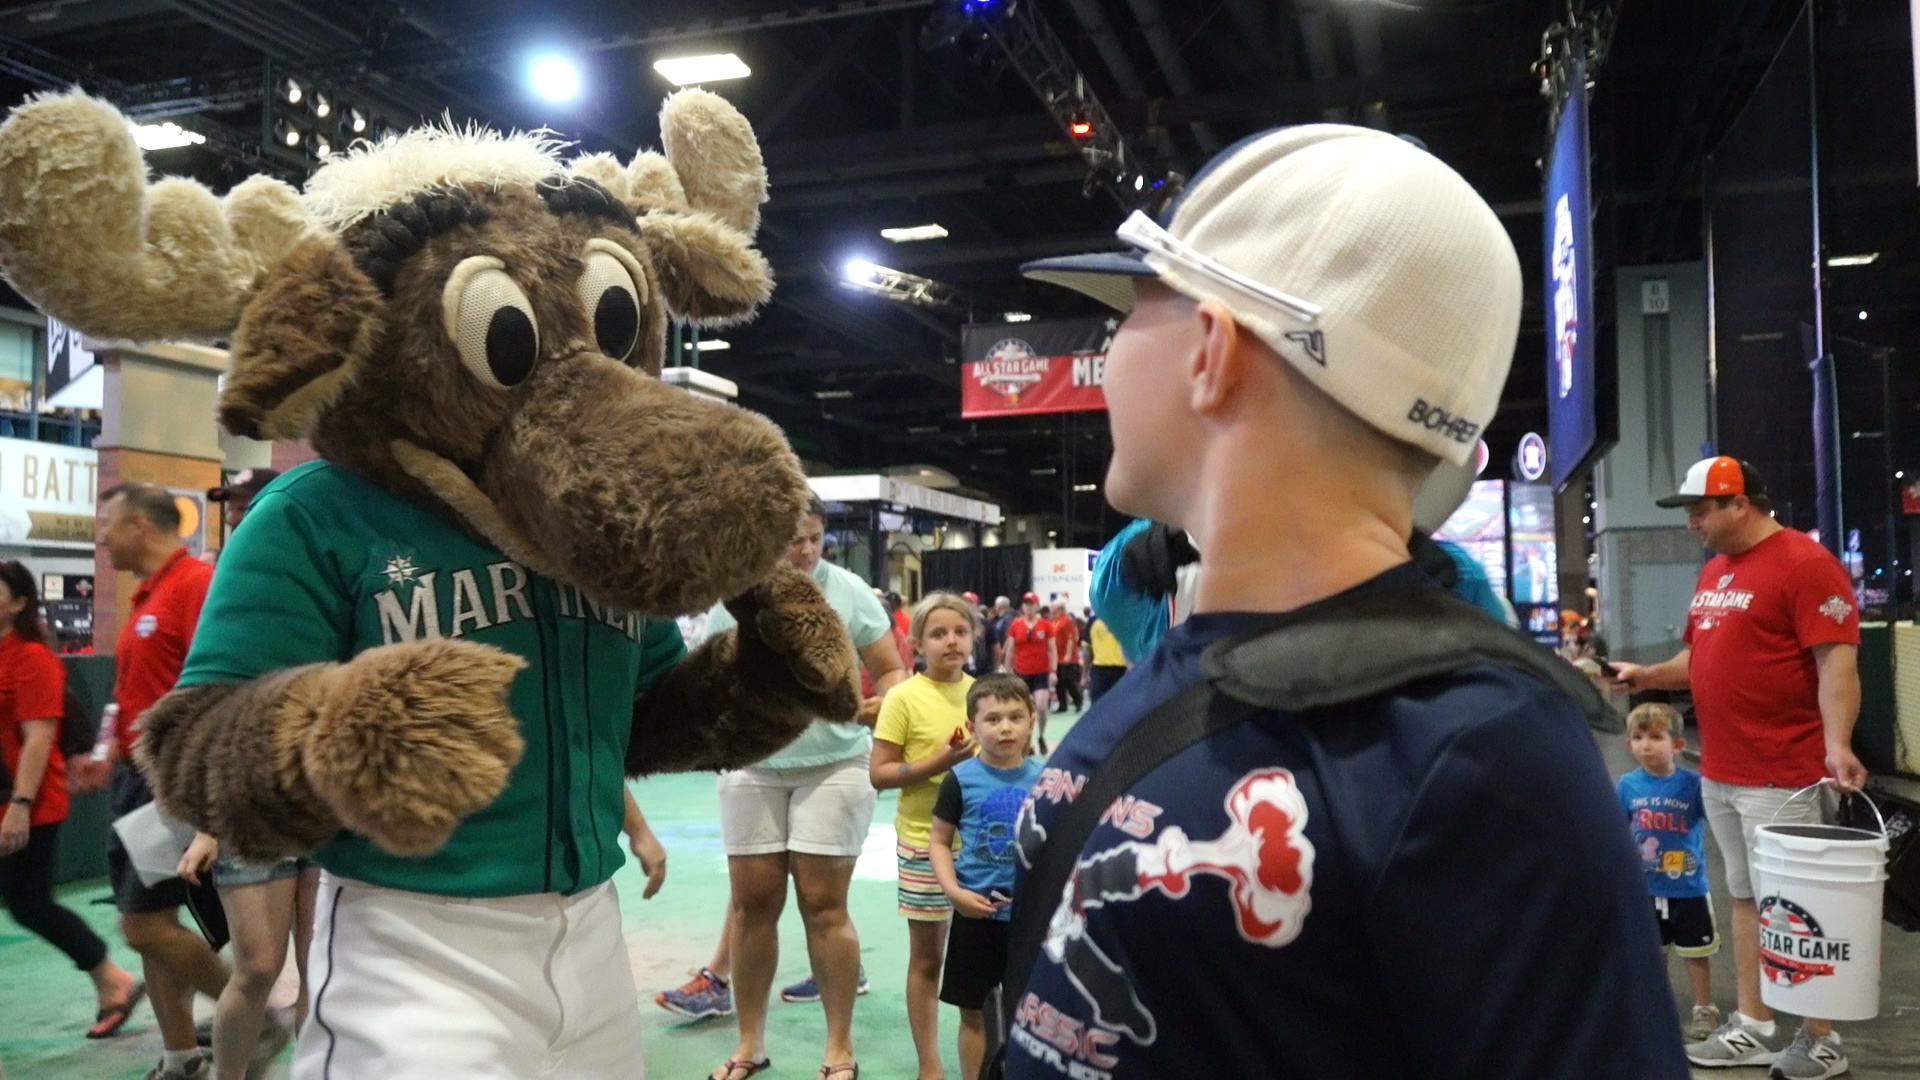 Fans Fired Up For Mlb All Star Weekend The Washington Post